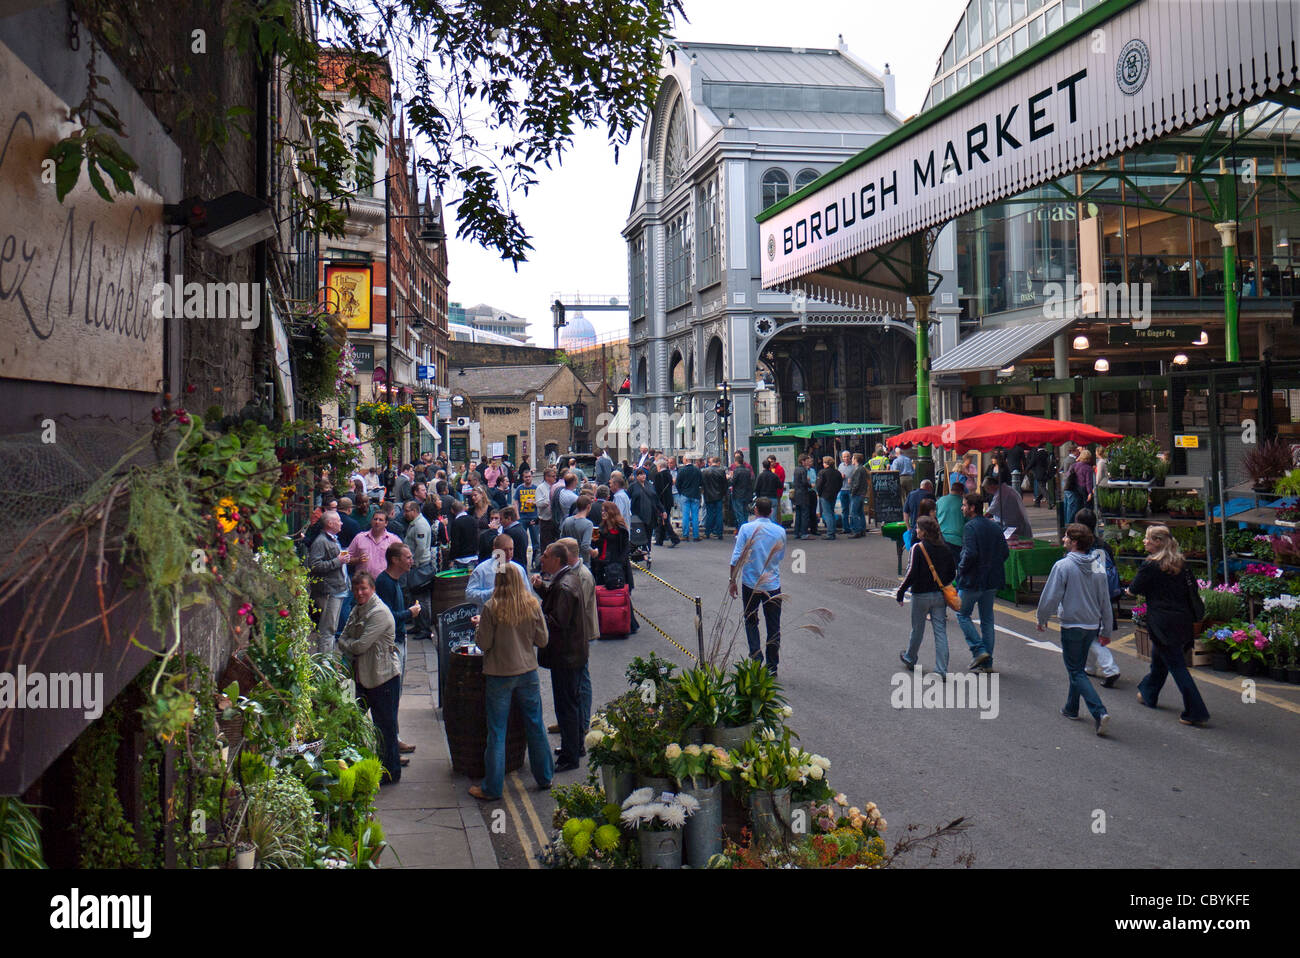 Borough Market exterior shoppers renowned popular international produce retail market London Bridge Southwark  London - Stock Image